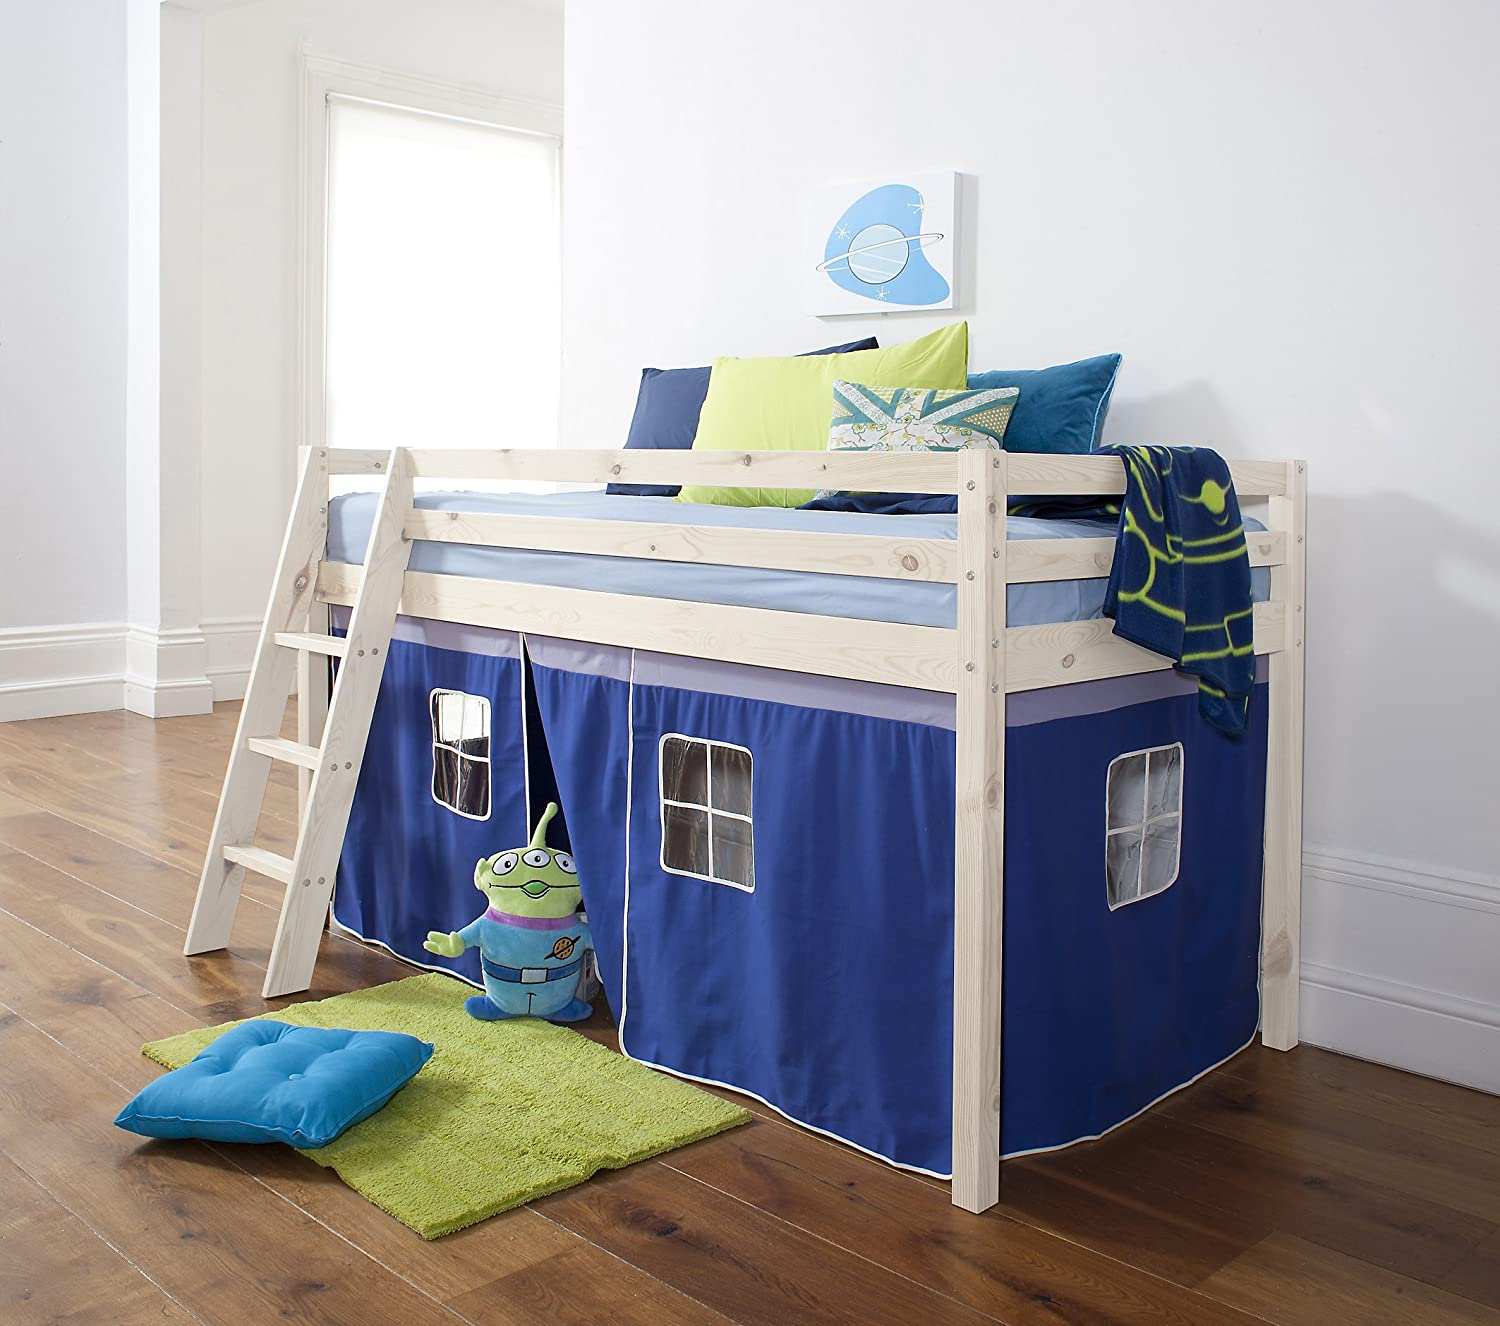 Cabin Bed Tent for Midsleeper Bed in Choice of Colours (Blue) Amazon.co.uk Kitchen u0026 Home : tent for a bed - memphite.com